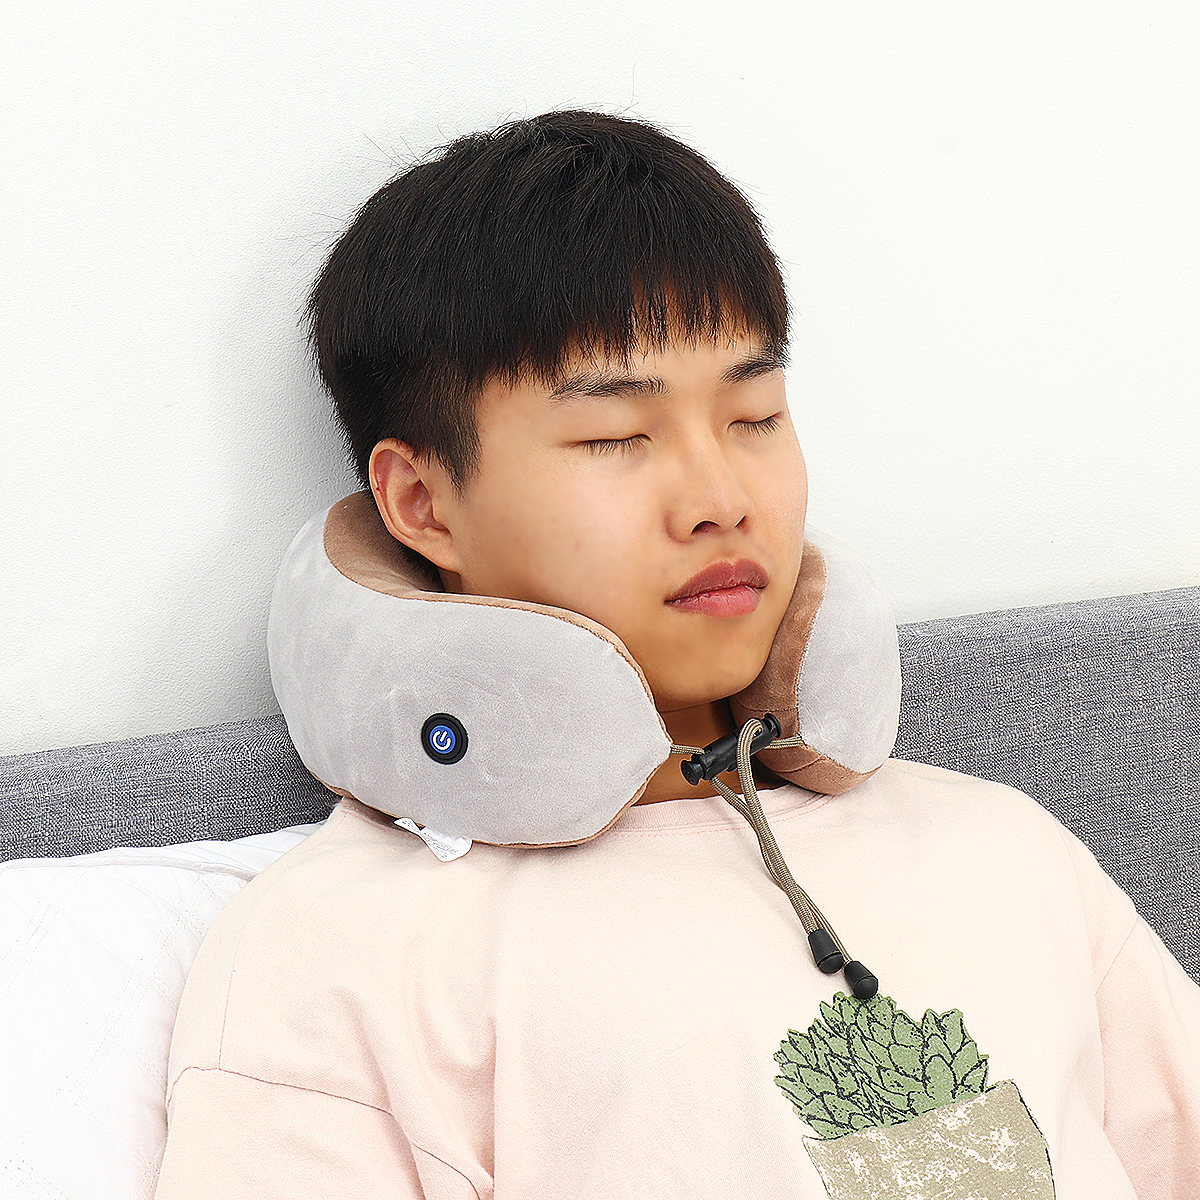 U Shade Pillow Electric Massage Neck Support Vibrating Kneading Charging Neck Pillow